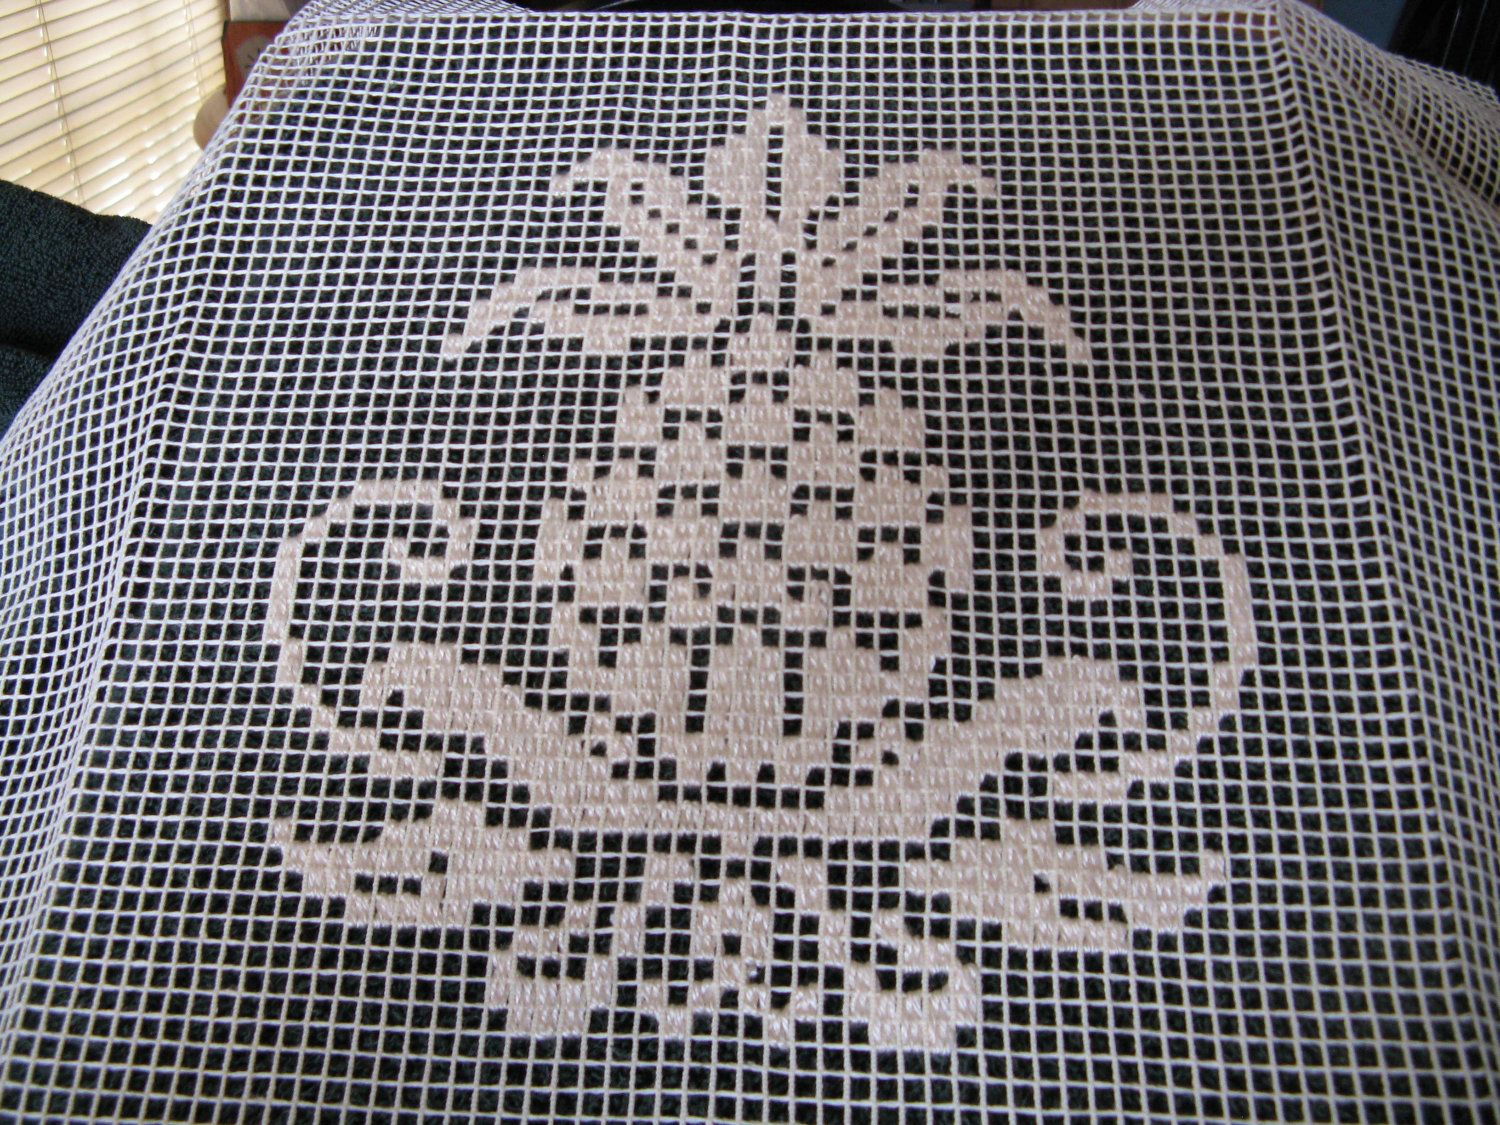 Hand stitched lace of an american traditional pineapple symbol of hand stitched lace of an american traditional pineapple symbol of welcome biocorpaavc Gallery